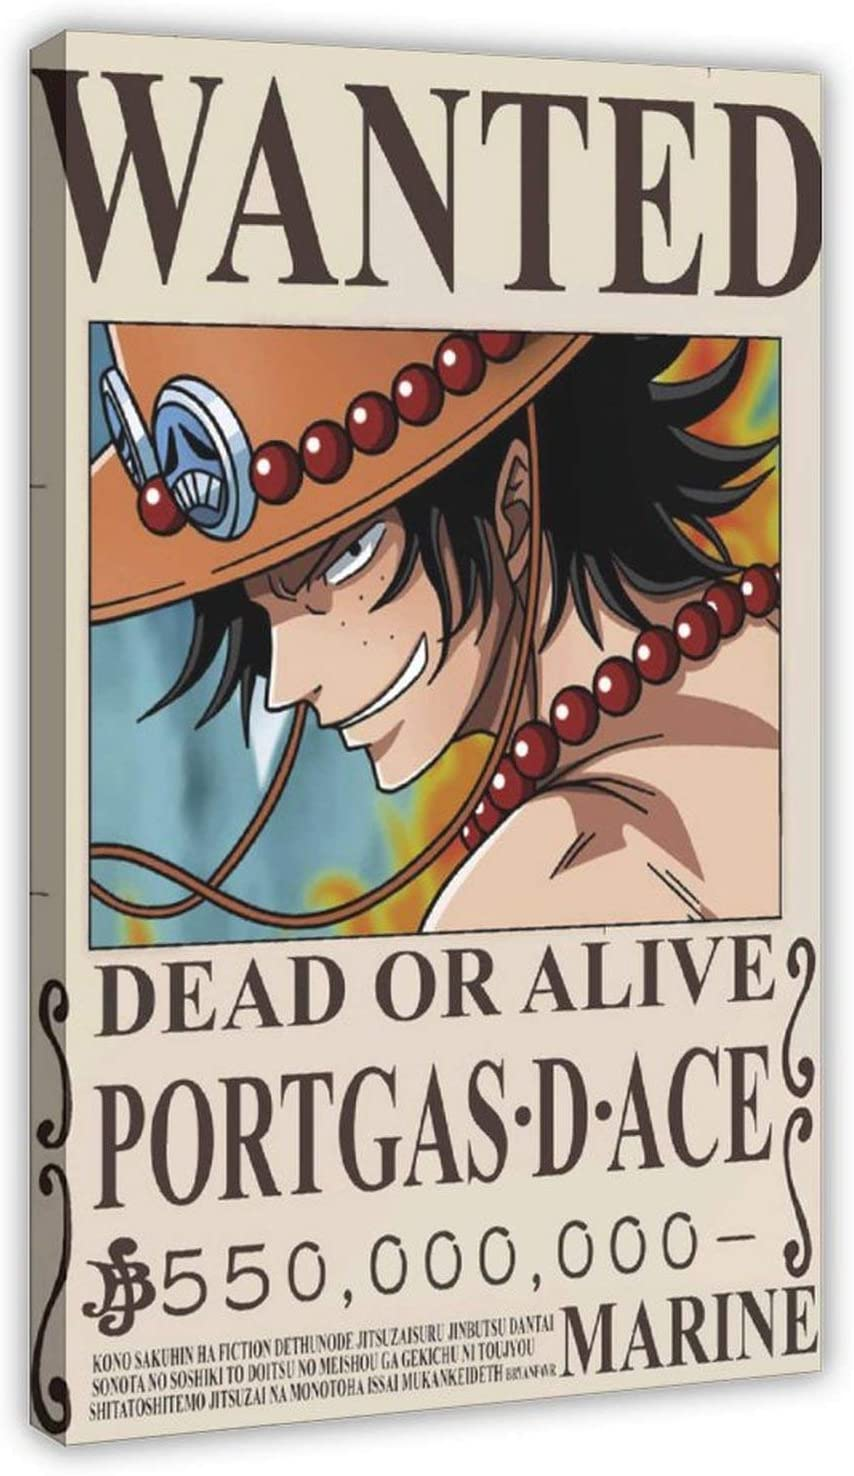 One Piece Wanted Portgas D mart Ace Wall Canvas Anime Free shipping Posters Poster